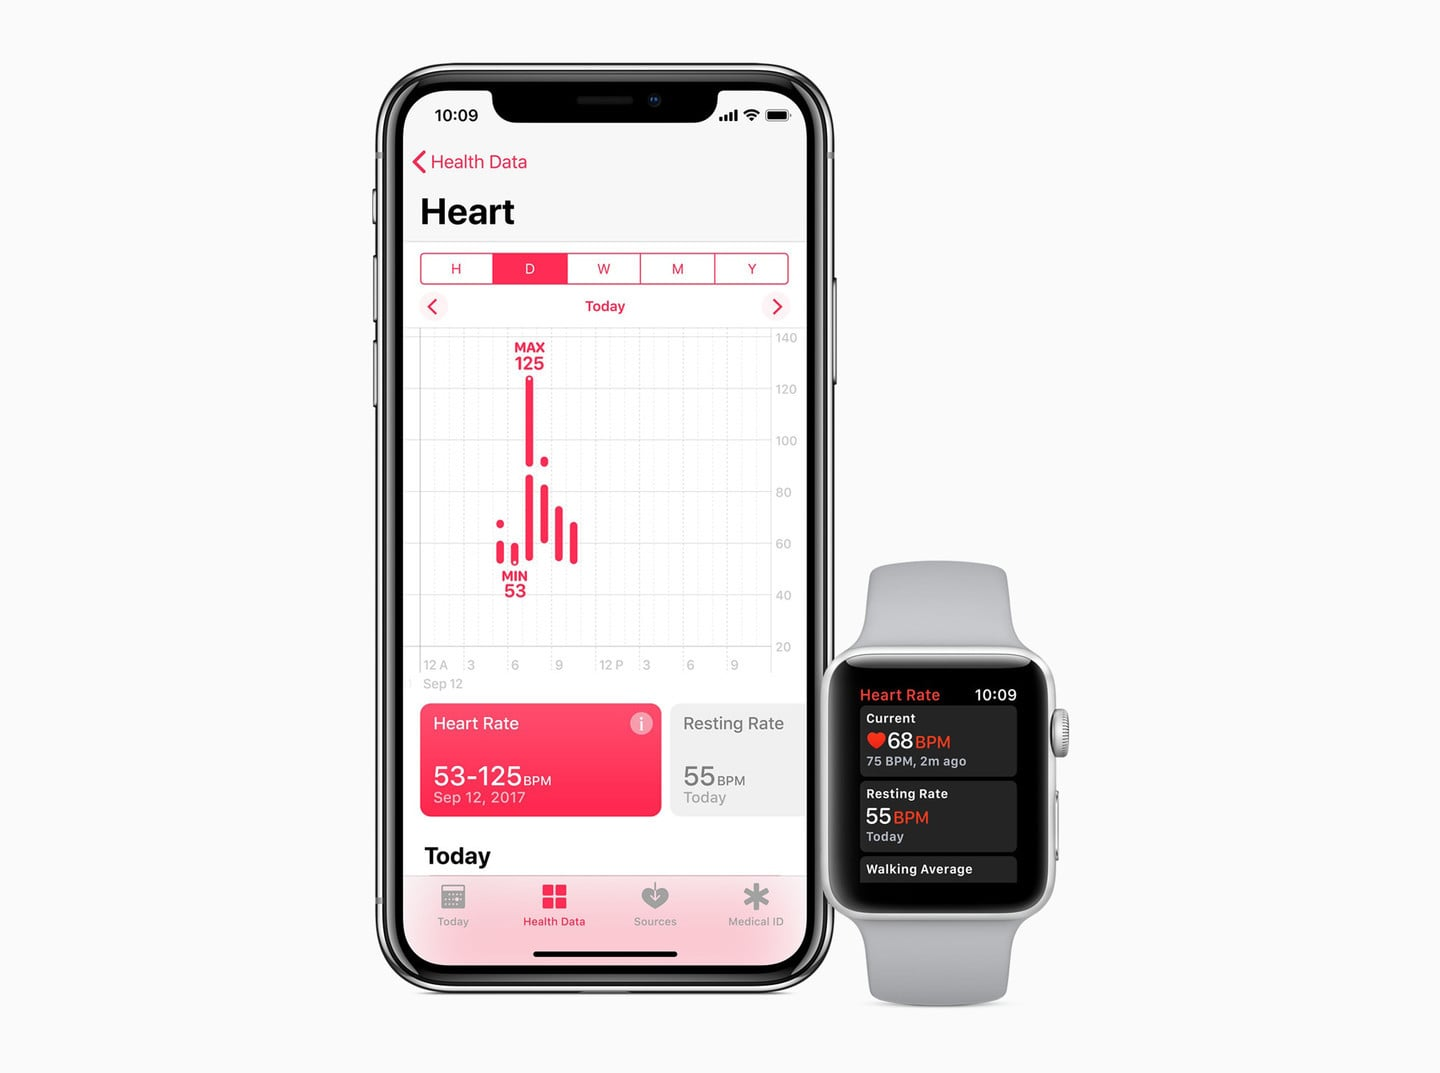 Future Apple Watch models could get EKG heart monitoring